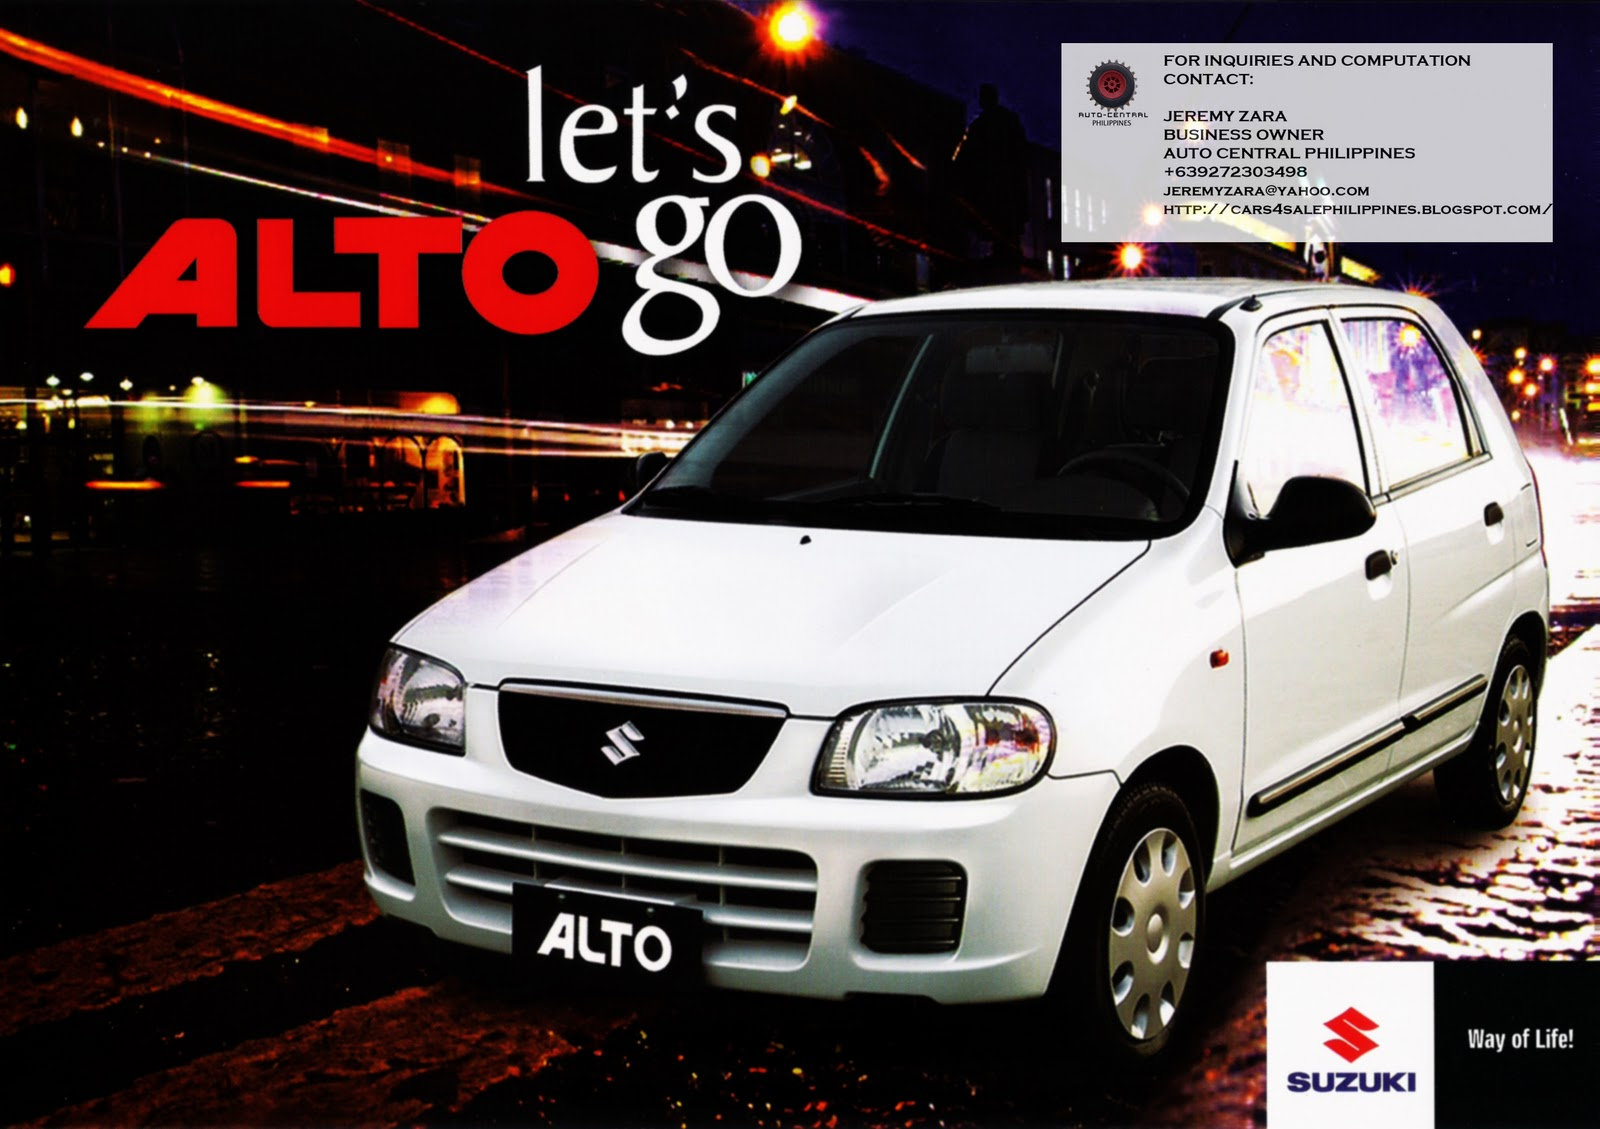 Cars For Sale Philippines Brand New: Brand New Cars For Sale: BRAND NEW SUZUKI ALTO FOR SALE